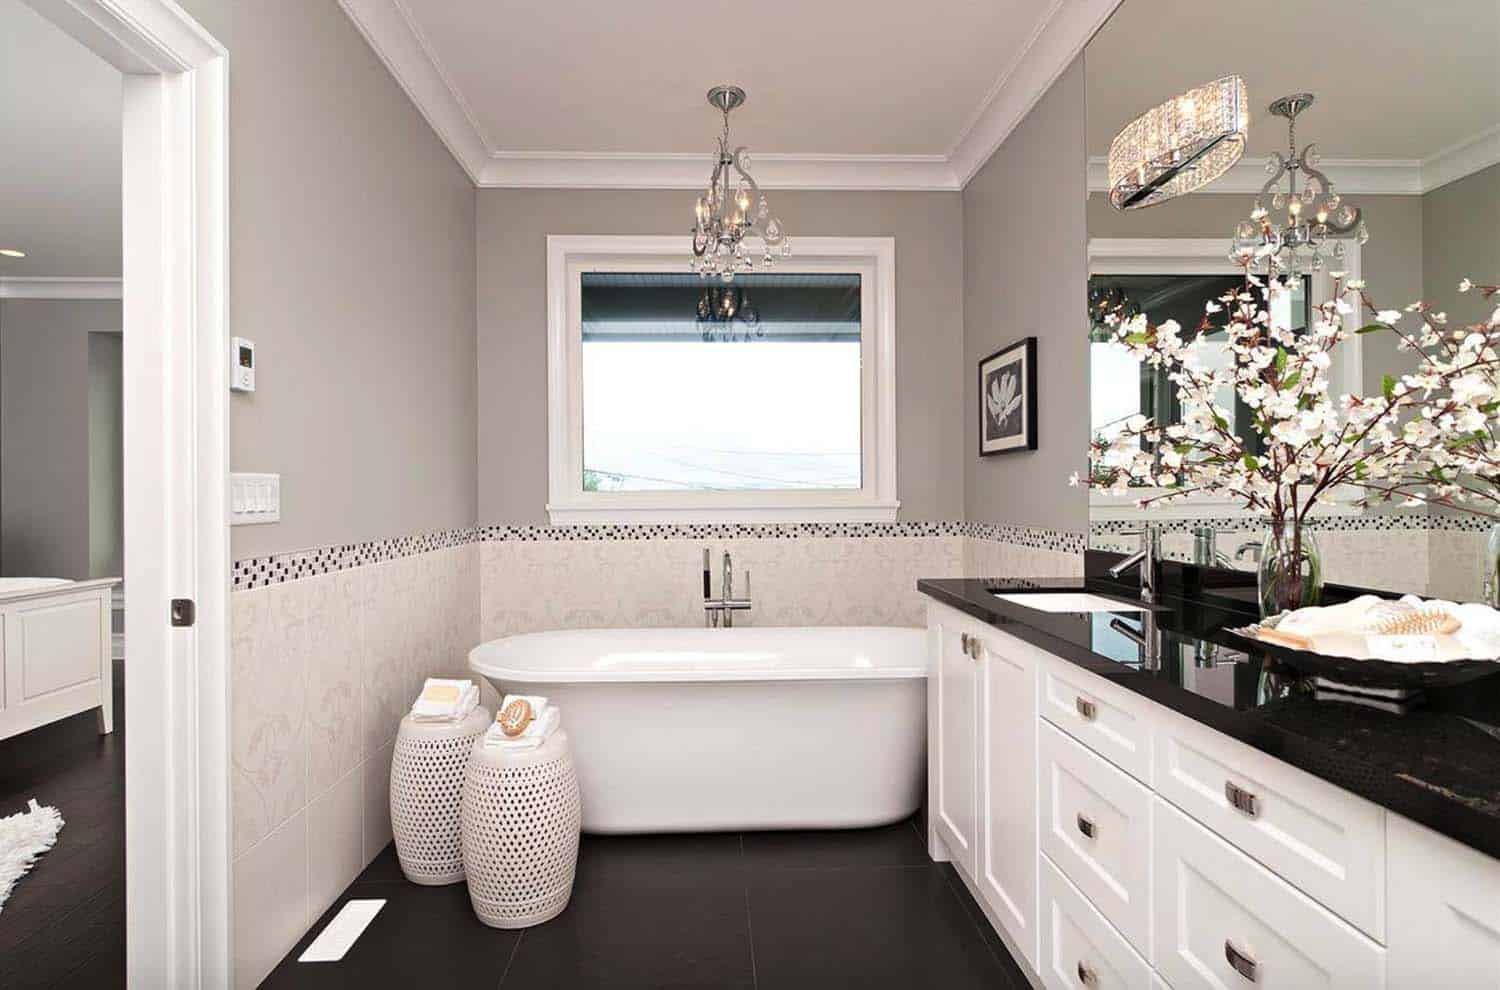 white bathroom design ideas 25 incredibly stylish black and white bathroom ideas to inspire 5224